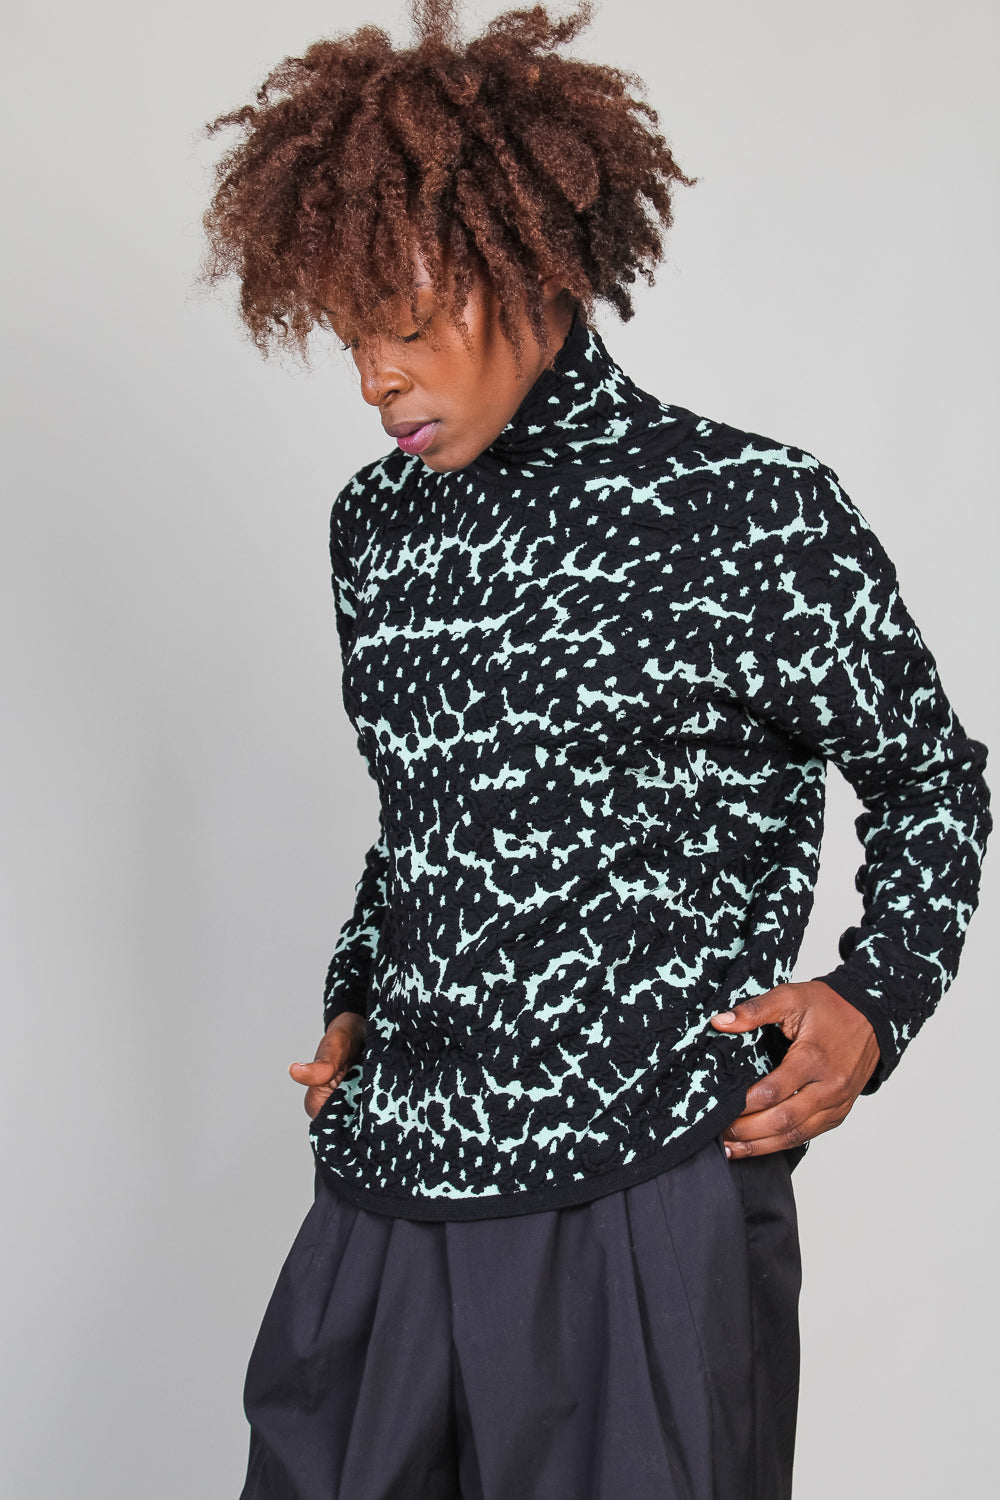 Khaji Turtleneck in Black/Mint Snake Jacquard